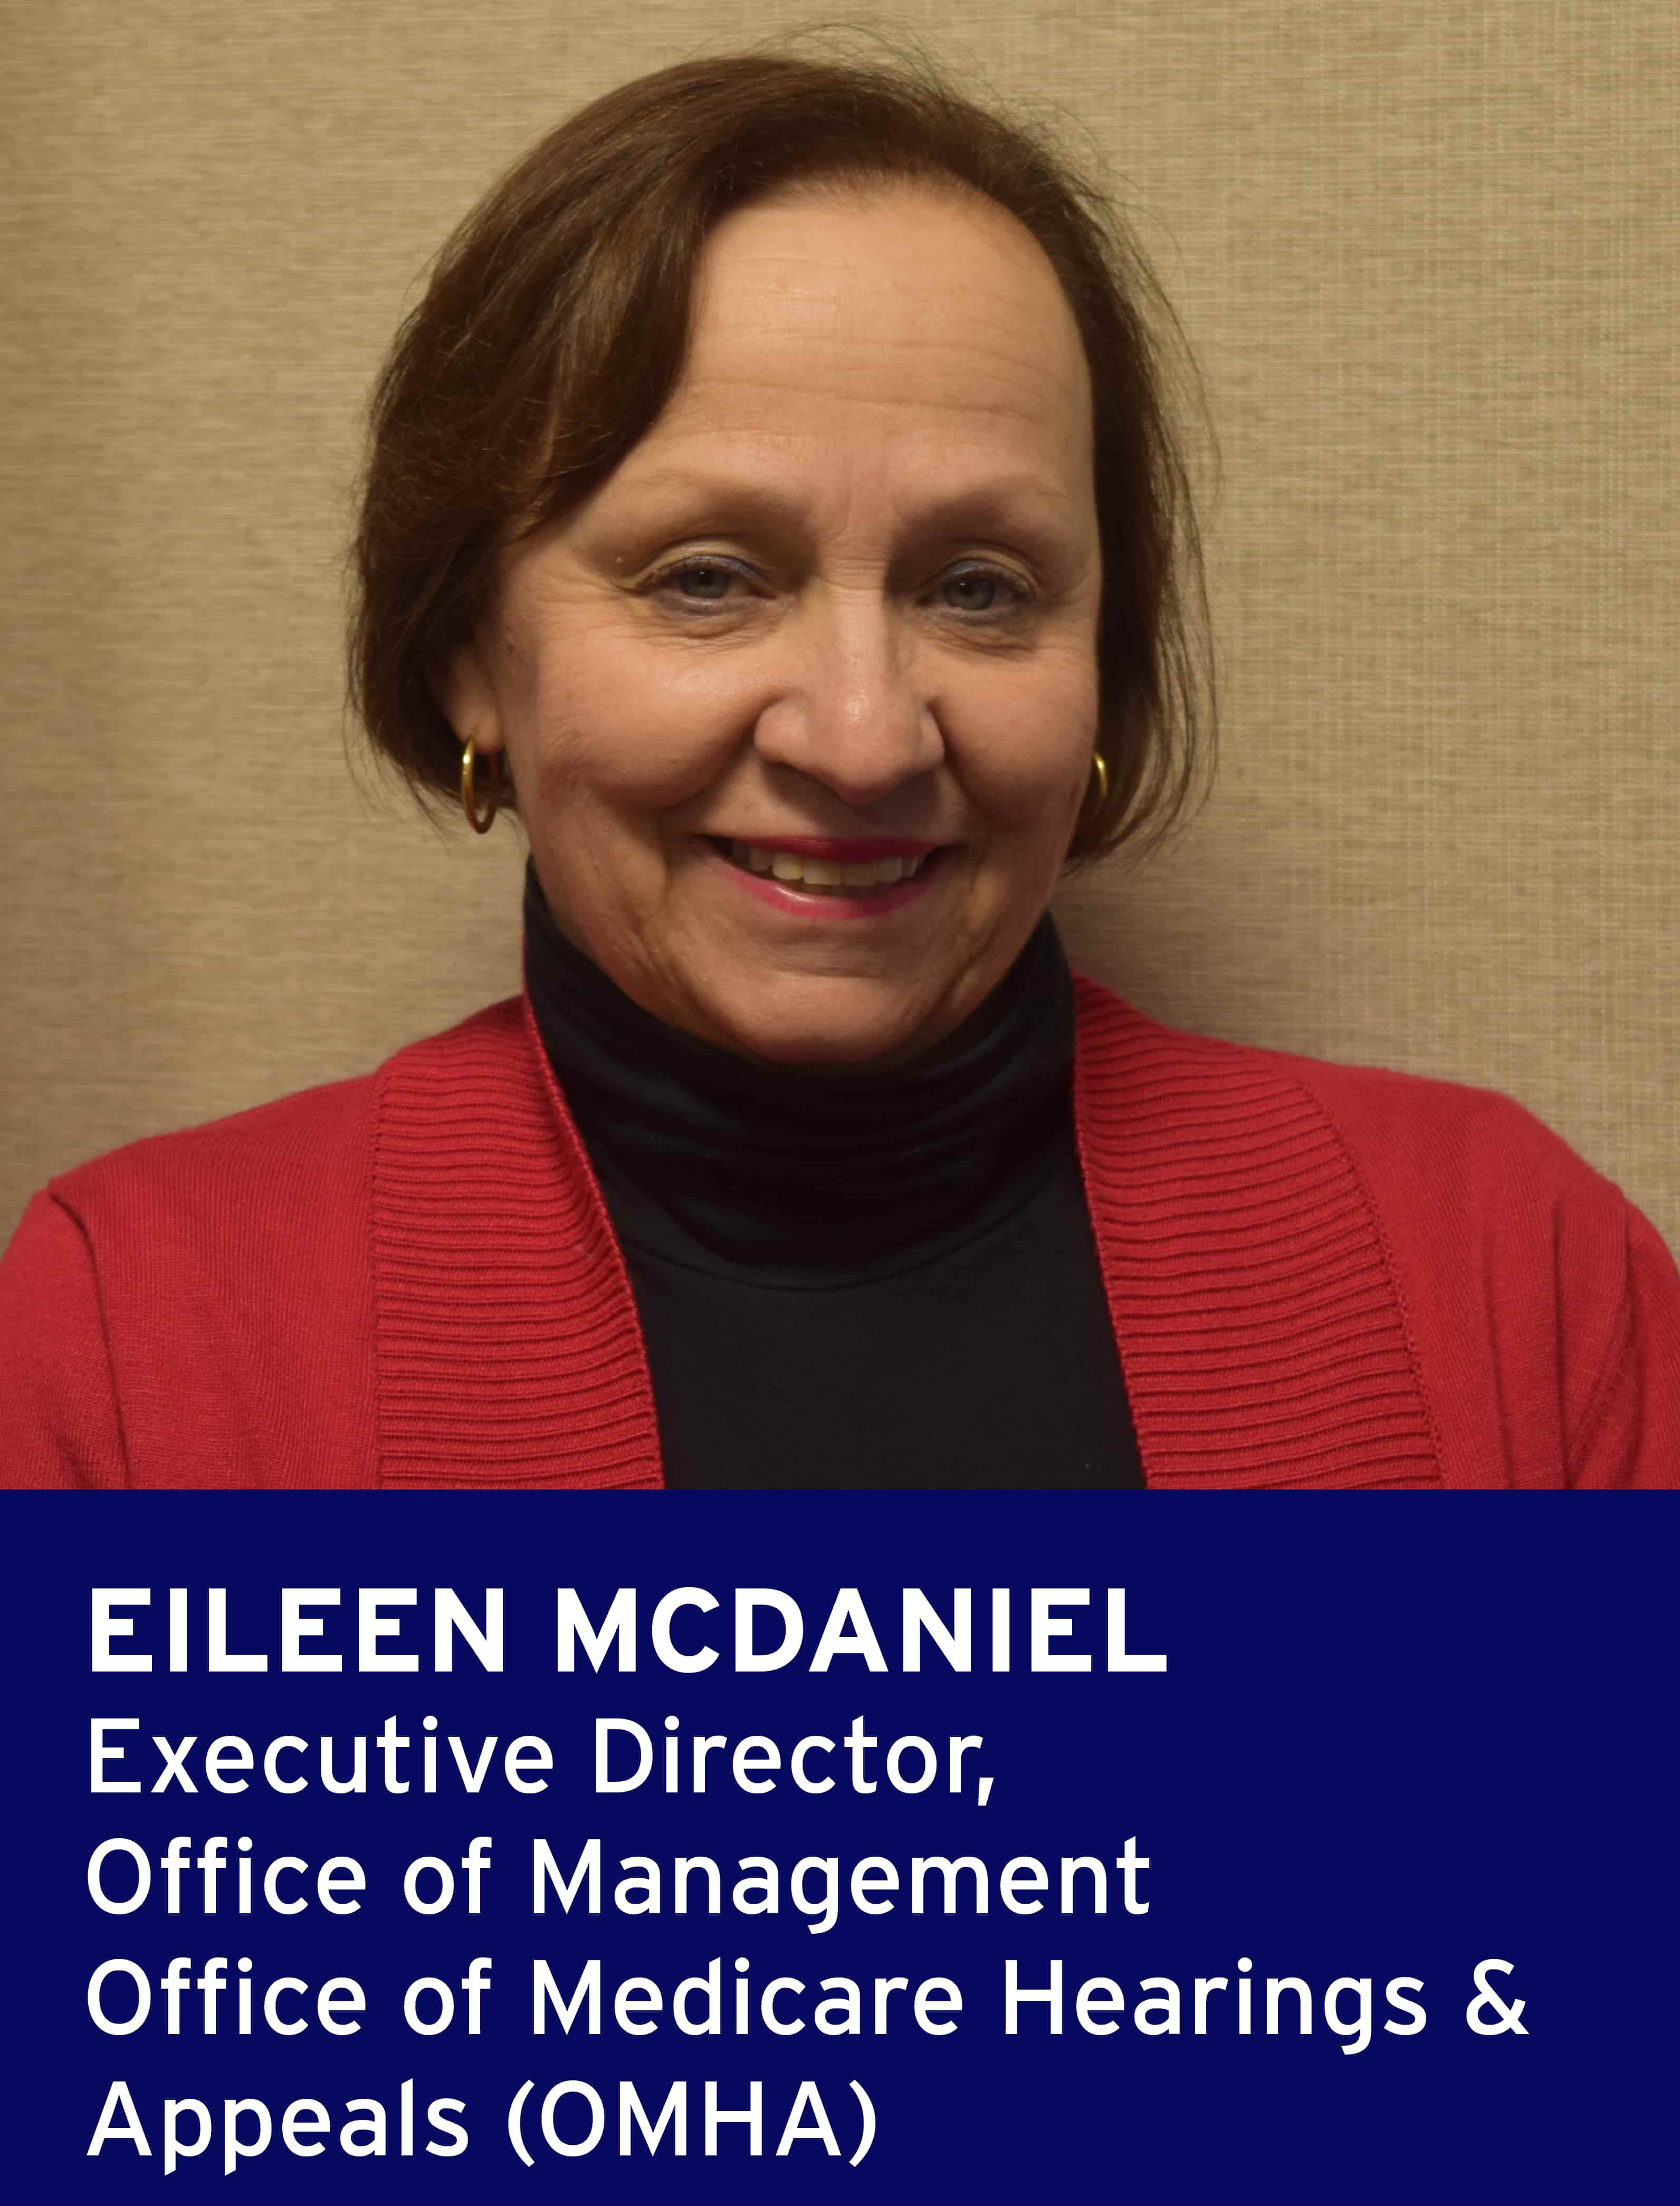 Eileen McDaniel, Executive Director, Office of Management, Office of Medicare Hearings and Appeals (OMHA)